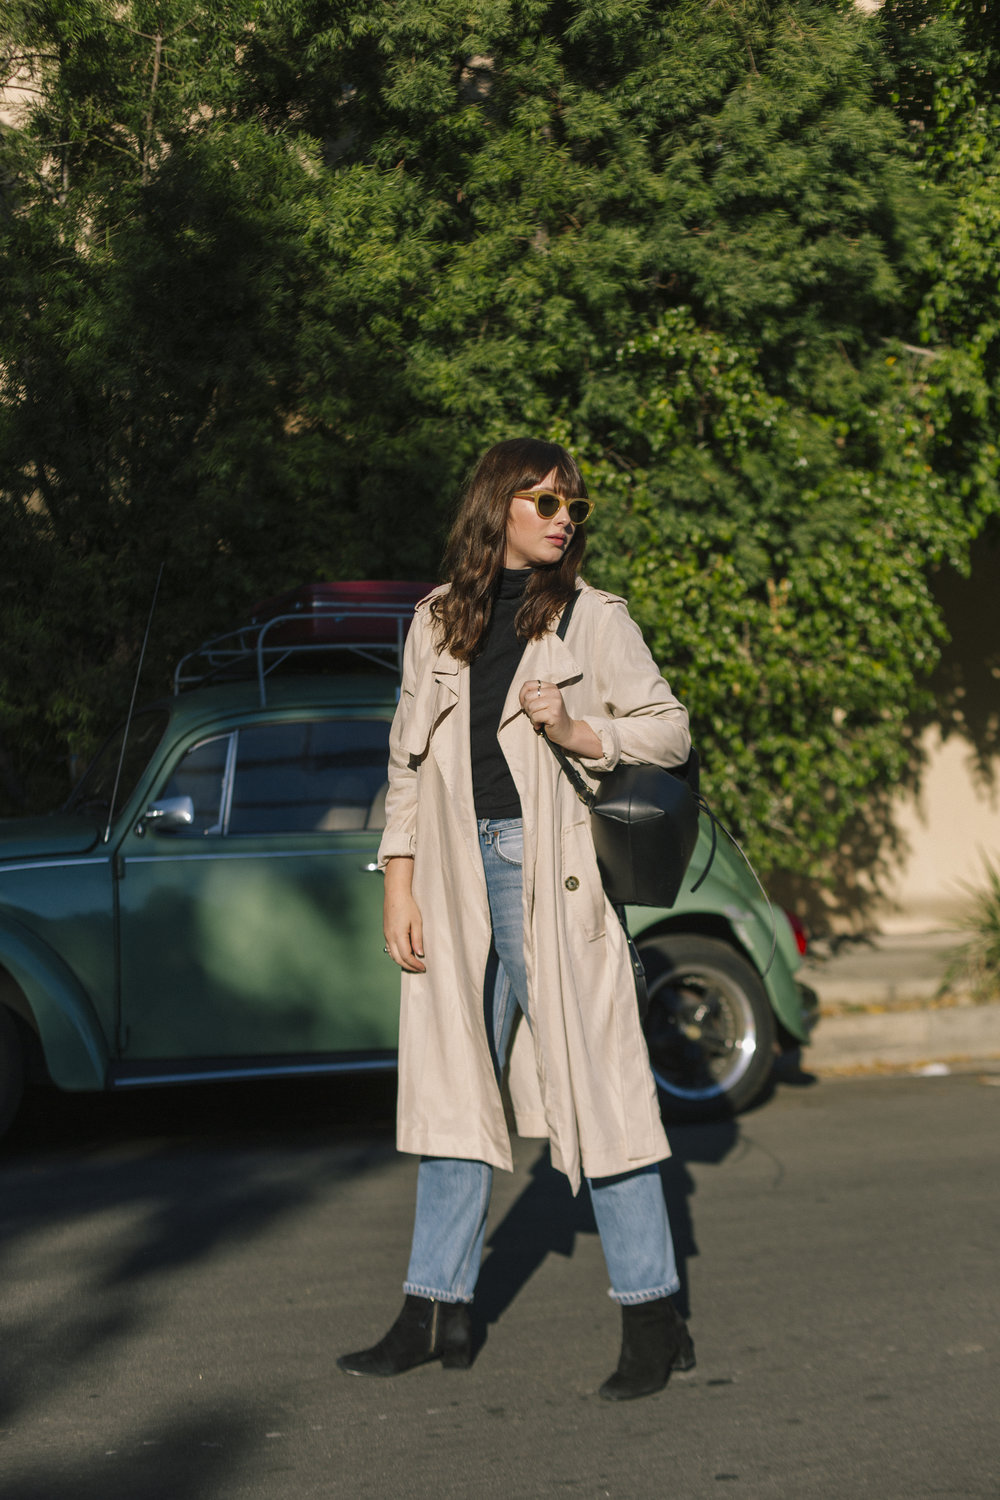 trench coat, mango    ;    backpack, mansur gavriel    ;    sunglasses, garrett leight x clare v    ;    turtleneck, madewell